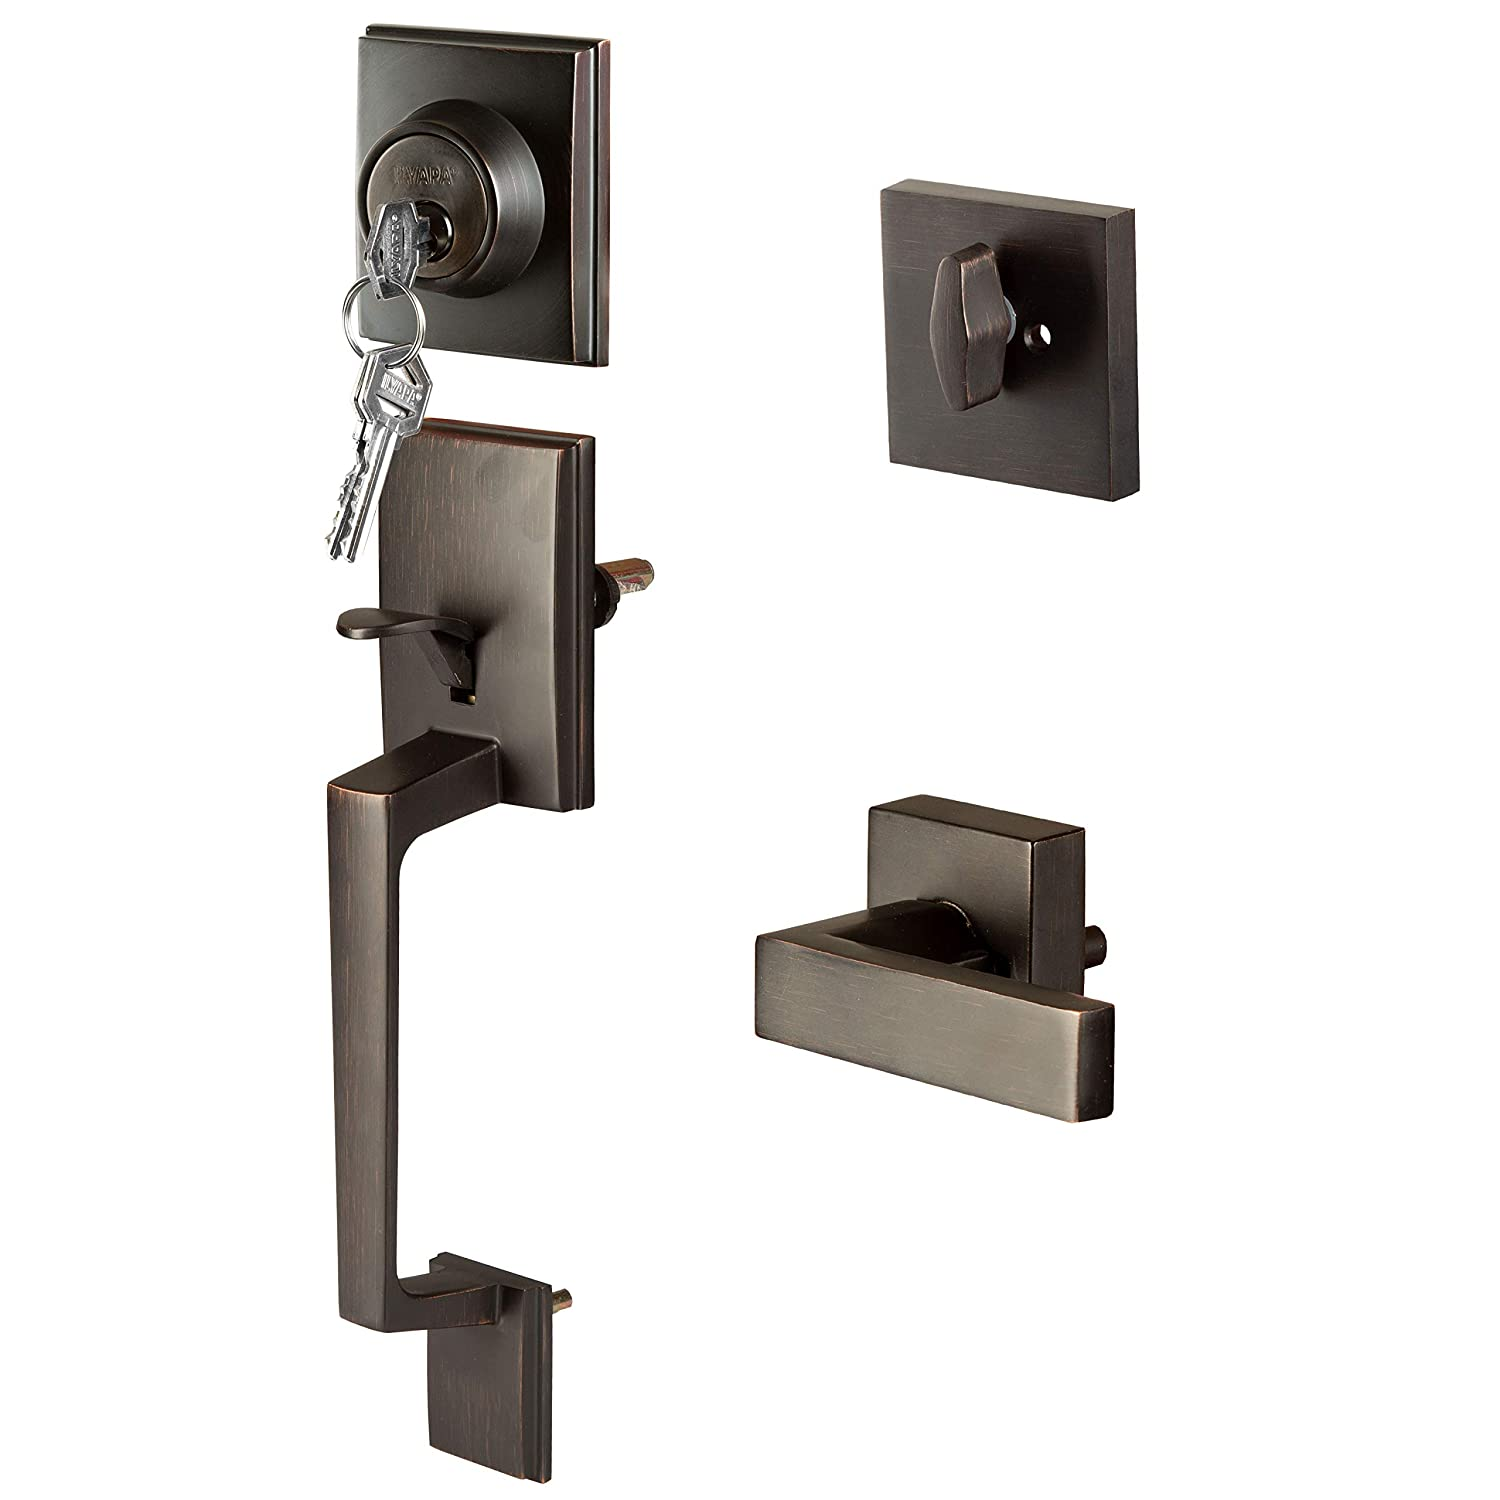 Modern Style Front Door Exterior Handleset Lock Set Handle Hardware With Single Cylinder Deadbolt Lock And Halifax Lever Low Profile Contemporary Design Improved Oil Rubbed Bronze Finish Amazon In Home Improvement